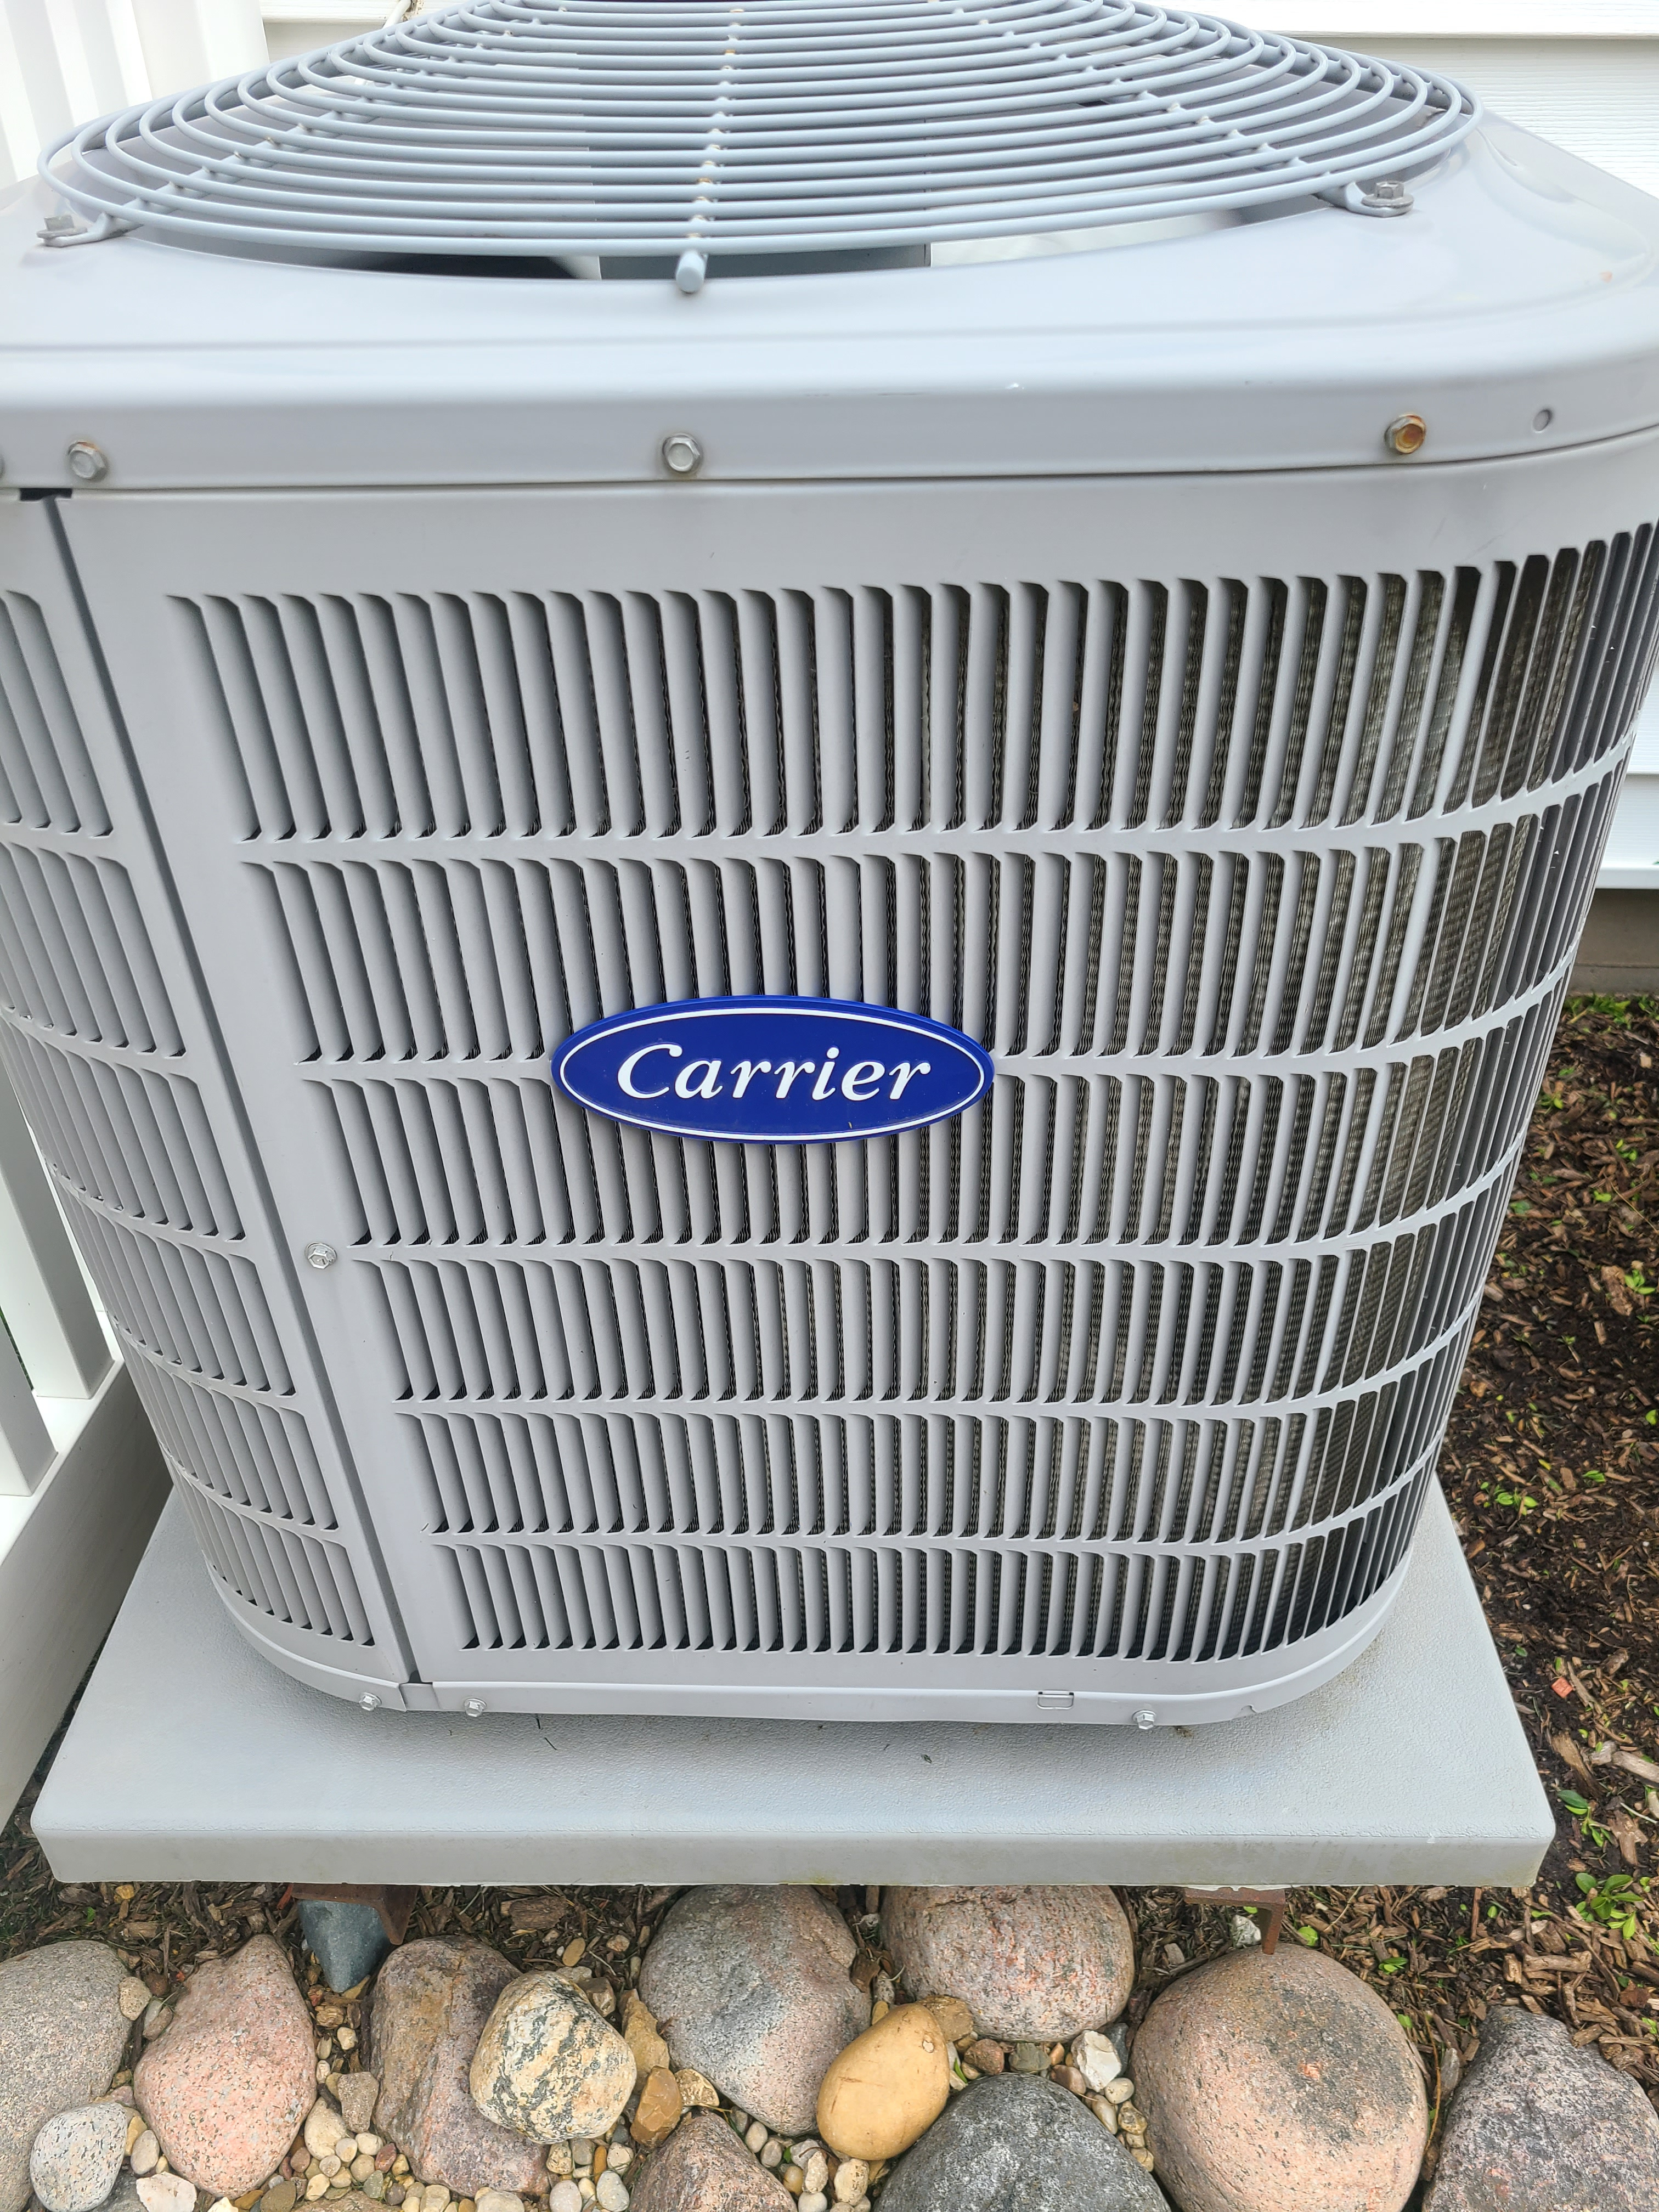 Carrier air conditioning maintenance for Comfort Club member.